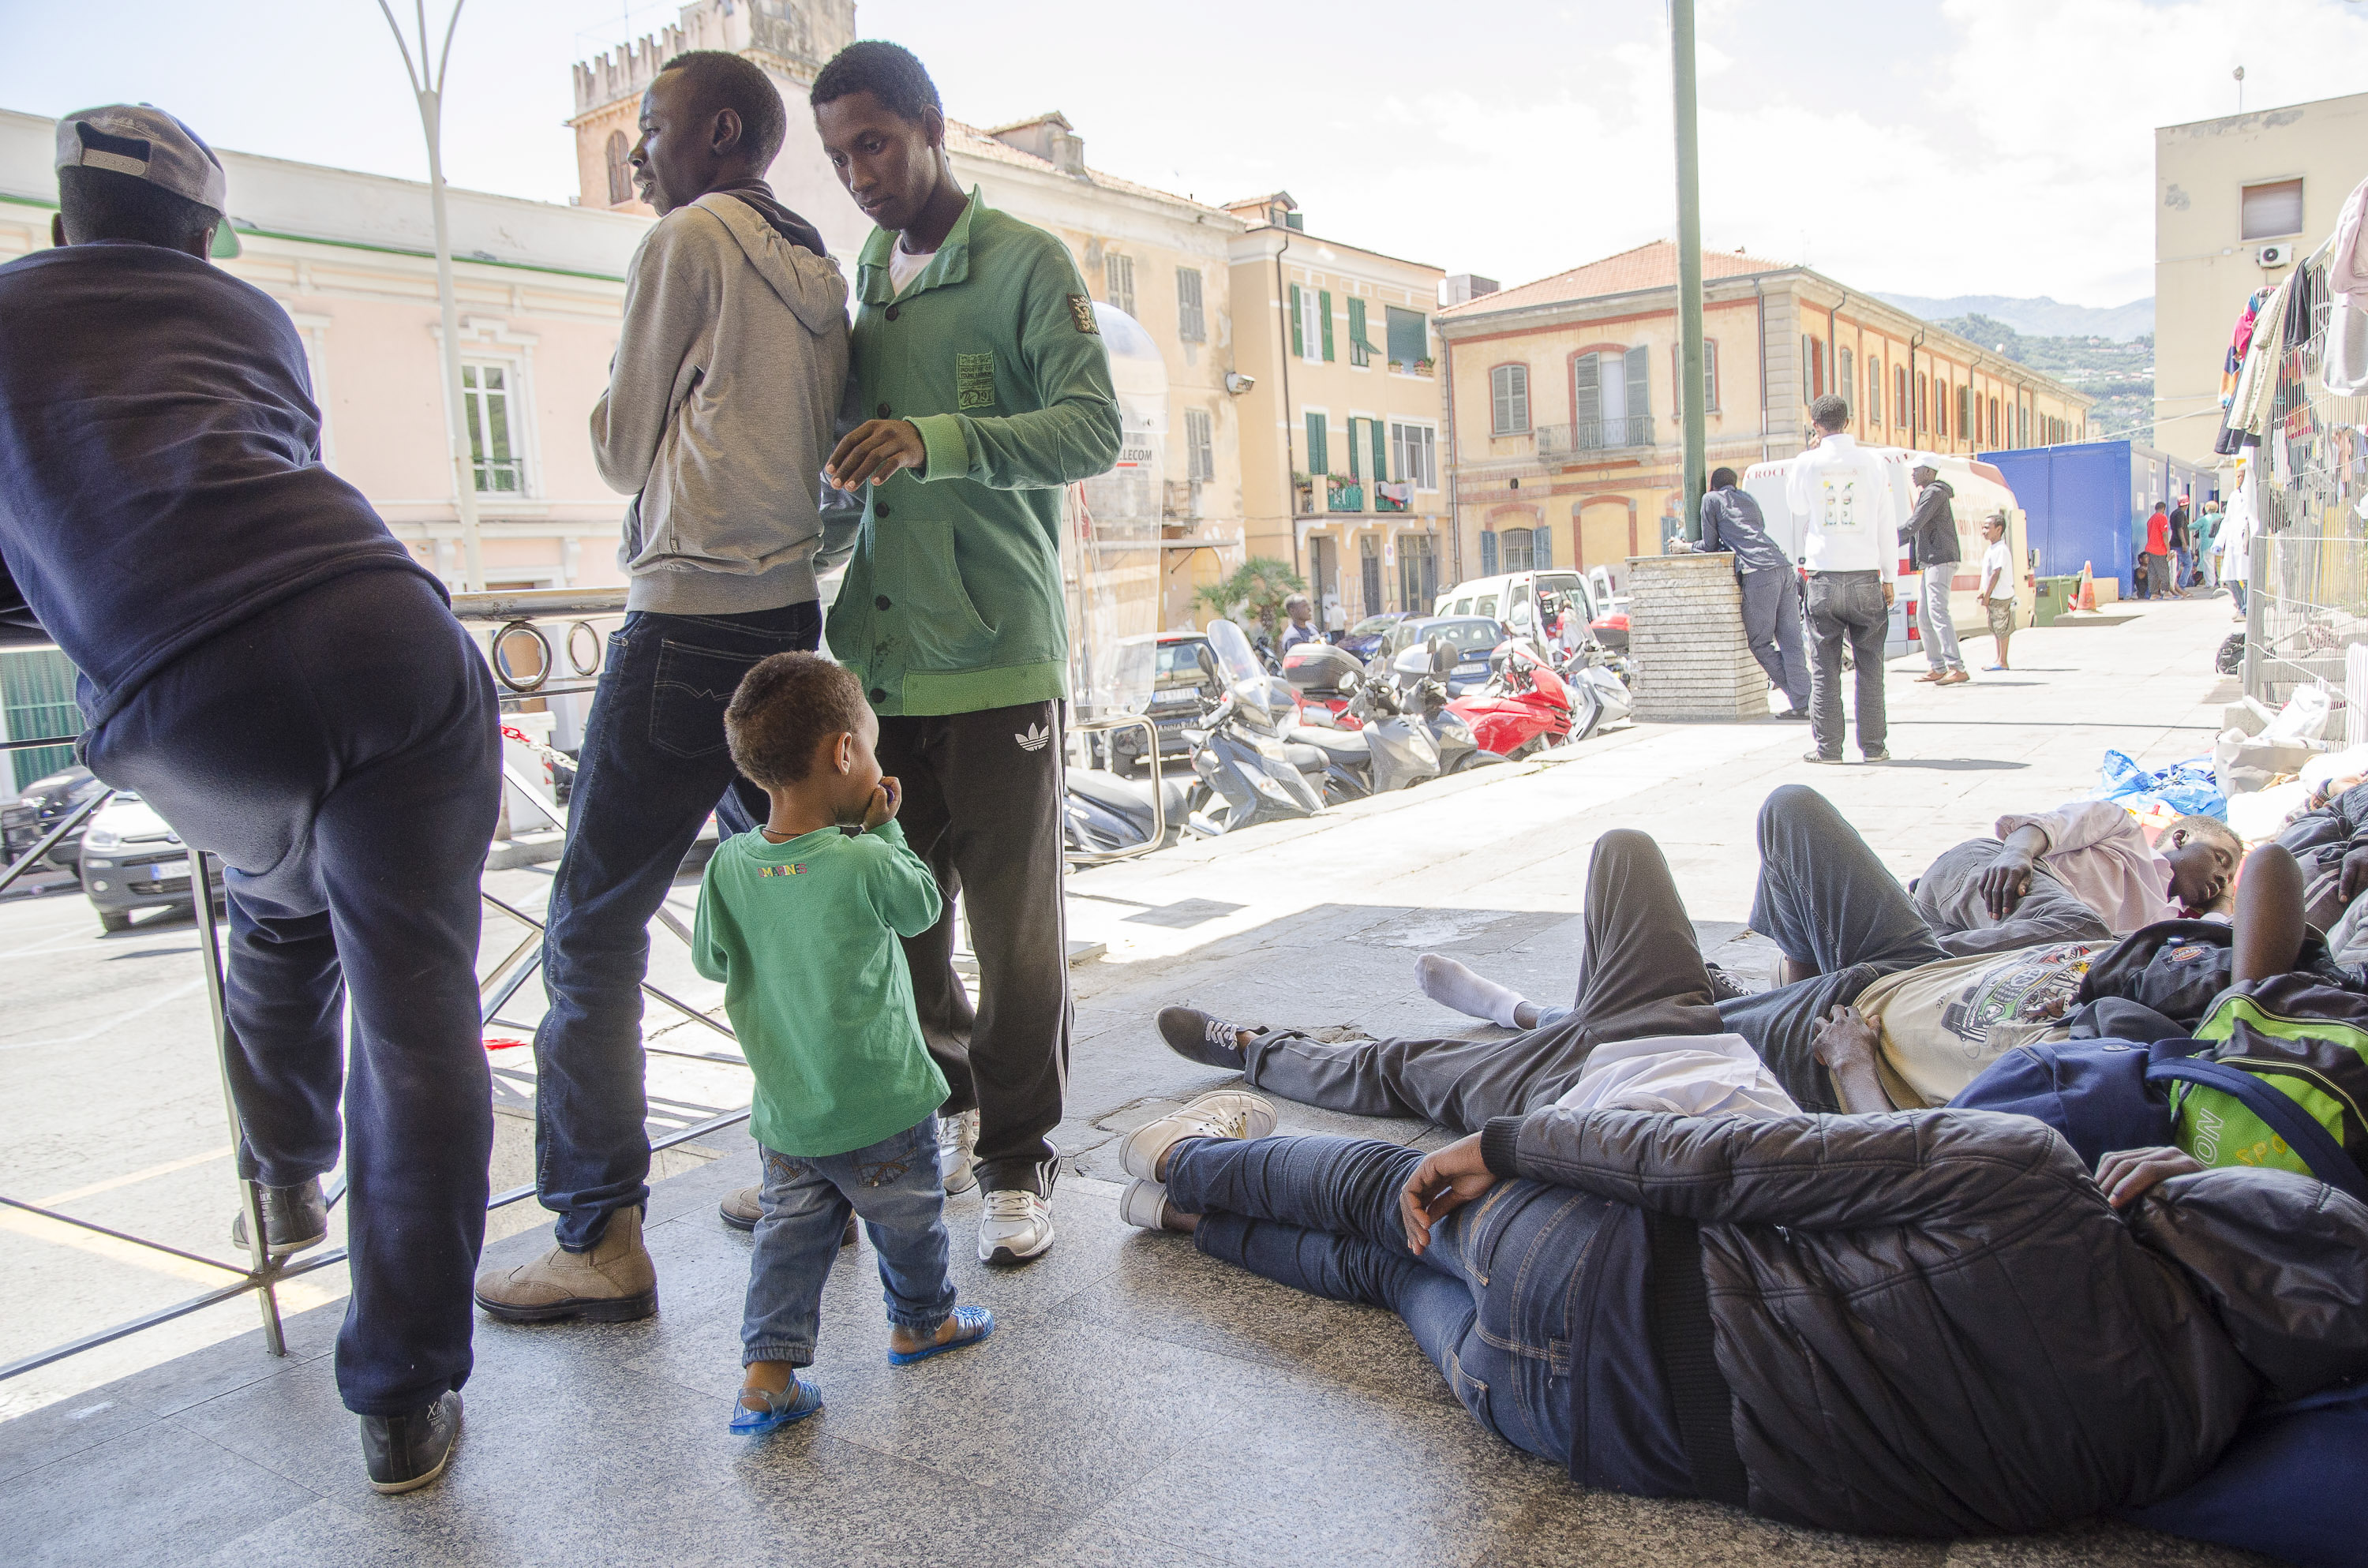 Refugees railway station in Ventimiglia